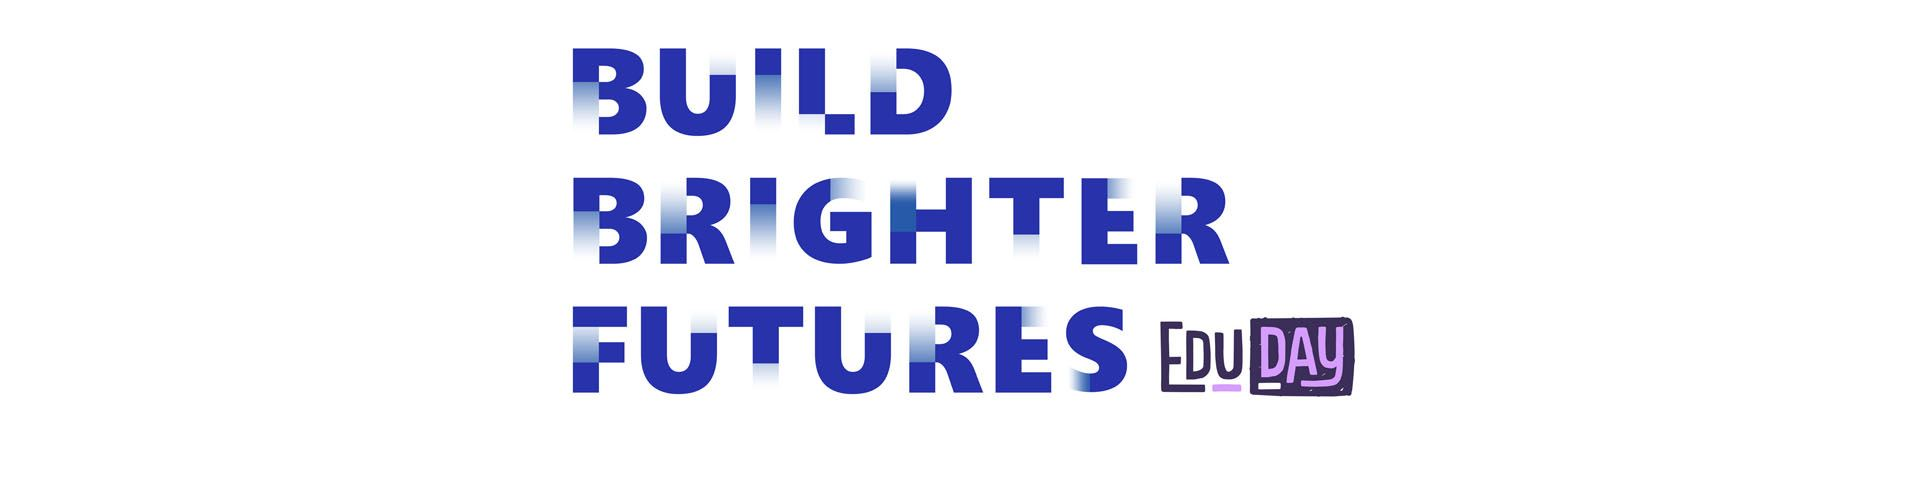 Build Brighter Futures